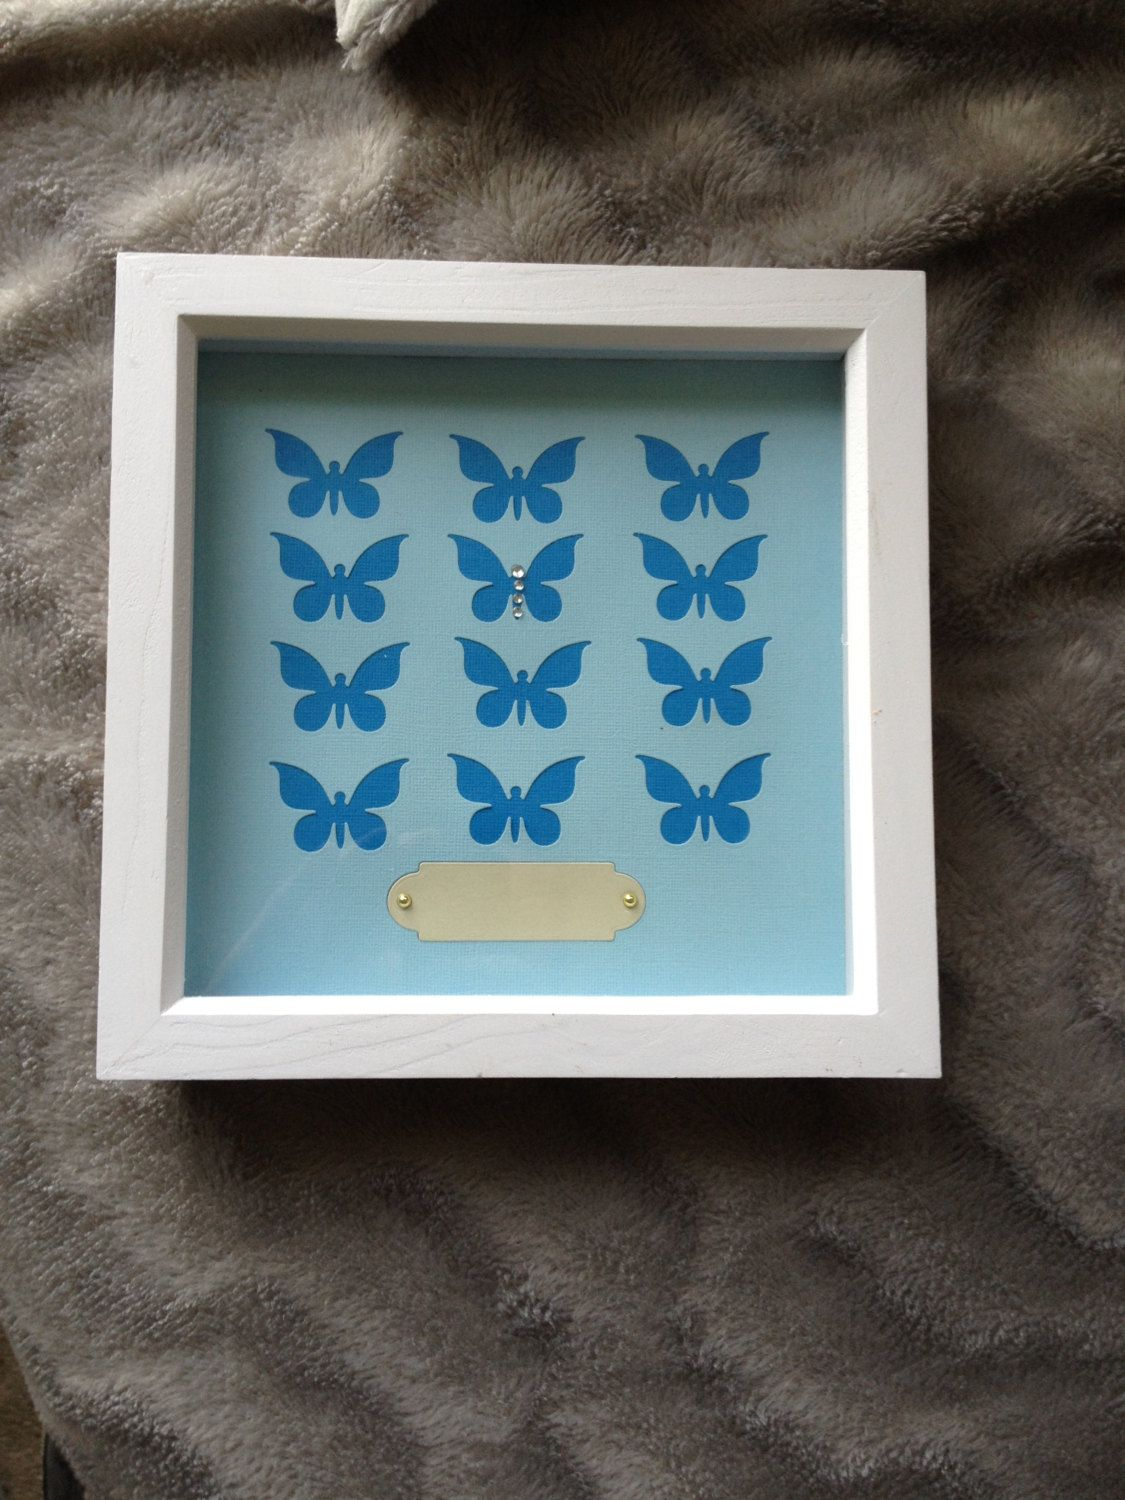 12 die cut butterfly with gems name plate box frame design by 12 die cut butterfly with gems name plate box frame design by designsbytiggik on jeuxipadfo Images